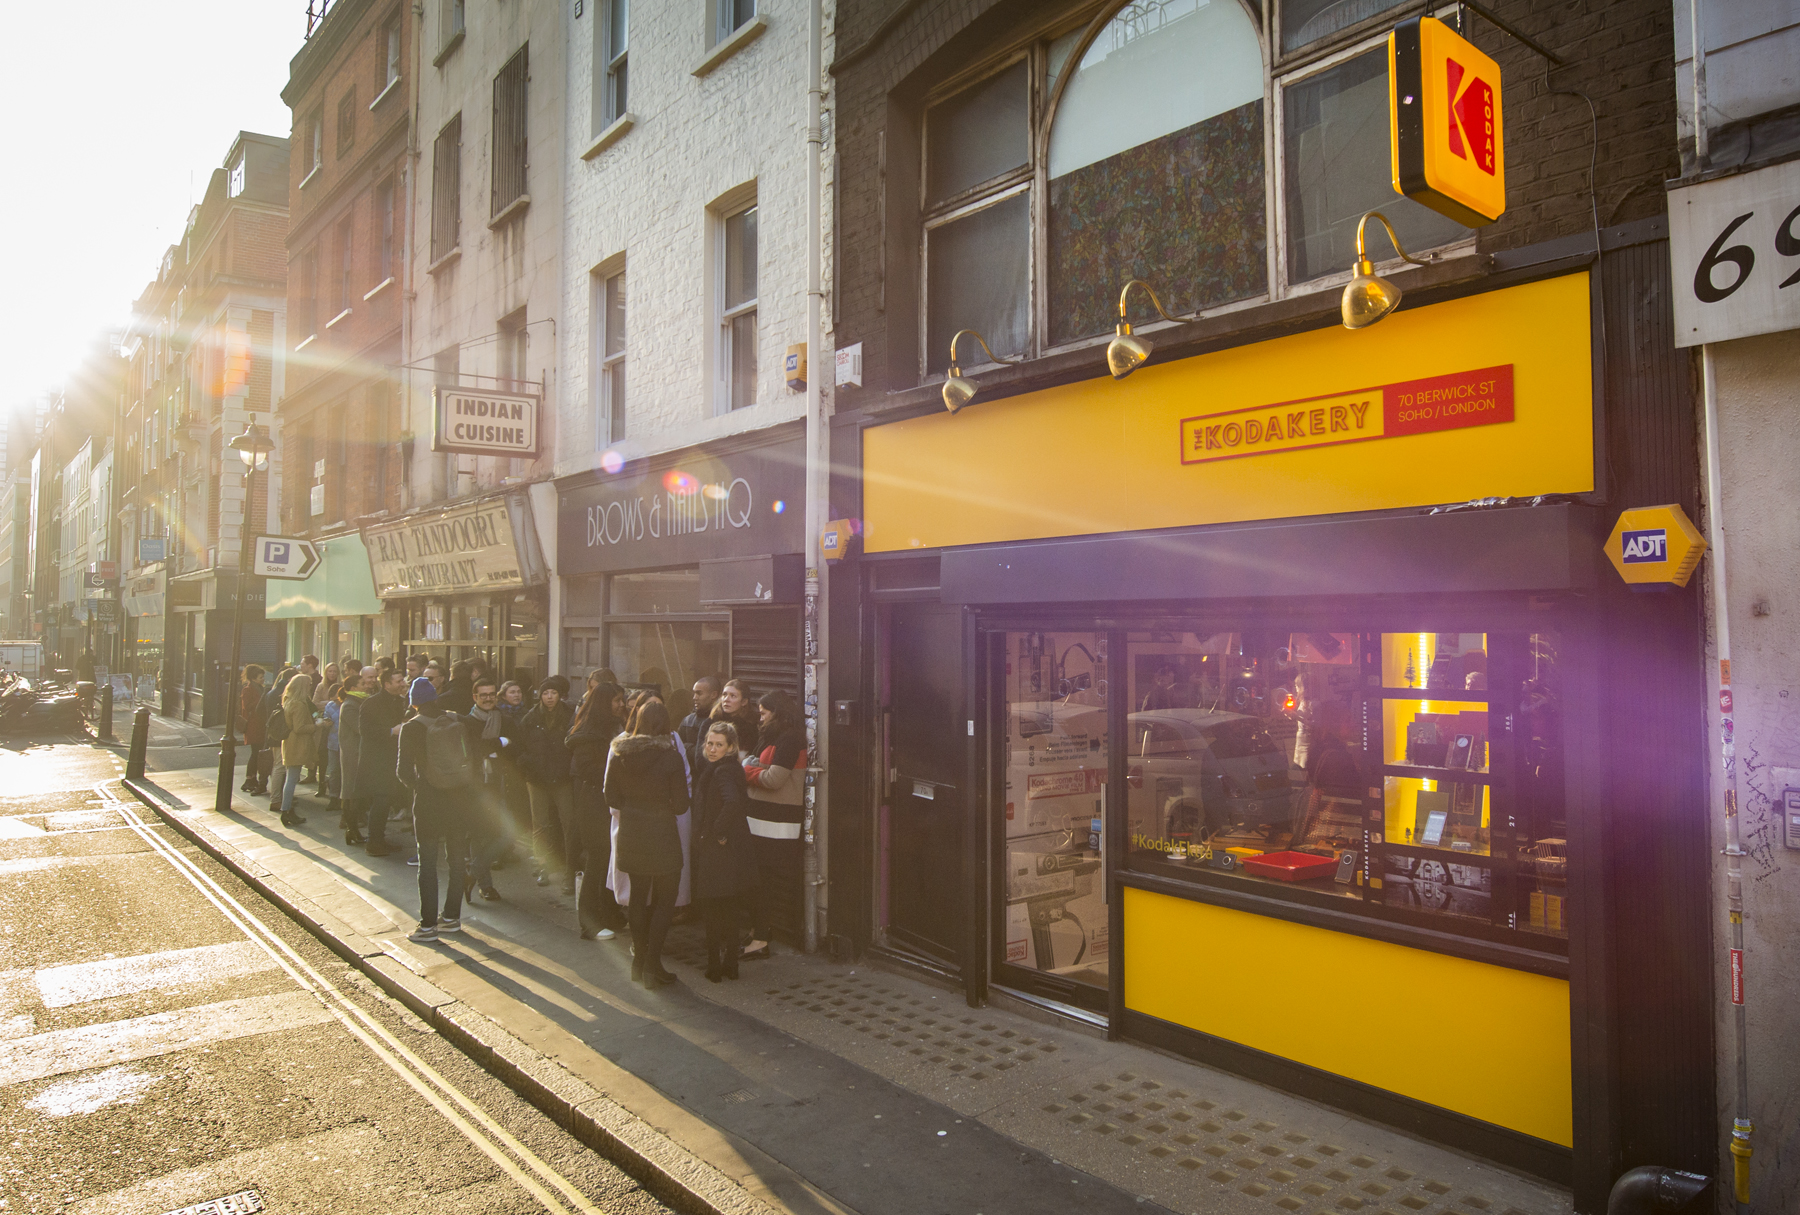 Kodak Launches London Pop-Up Shop with Storefront